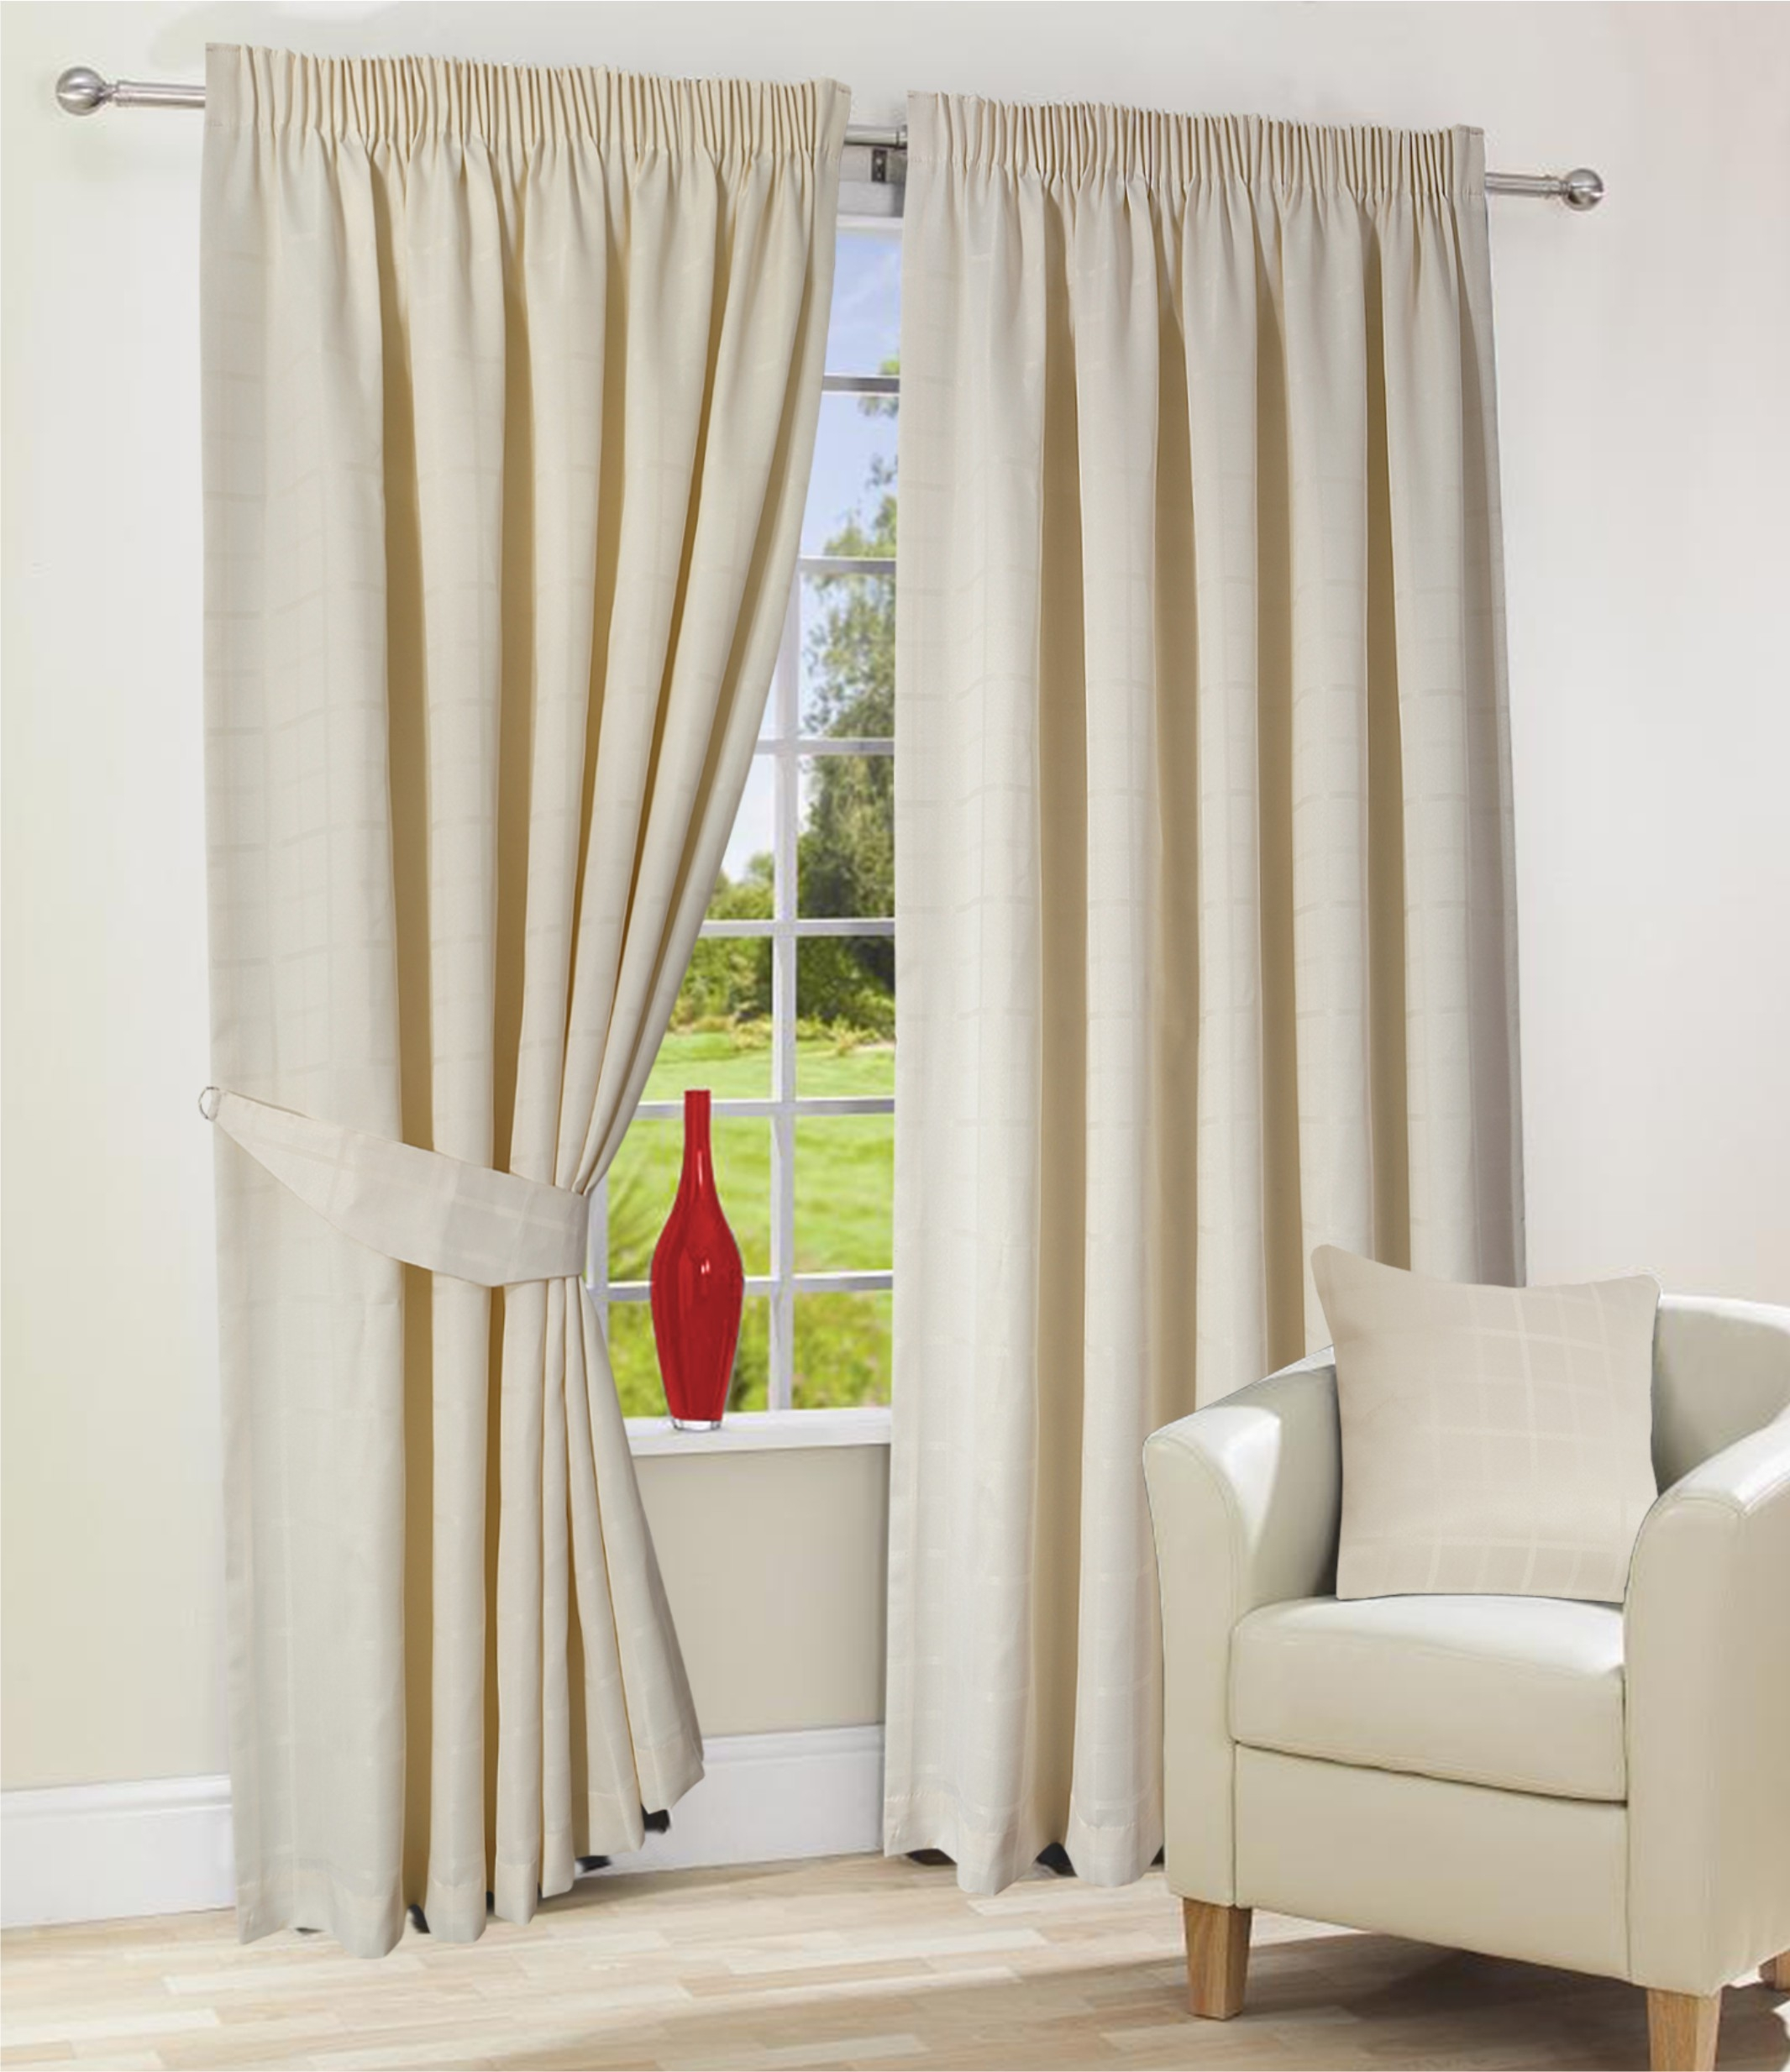 Lined Curtains Not Just A Covering Egovjournal Home Regarding Cream Lined Curtains (Image 9 of 15)